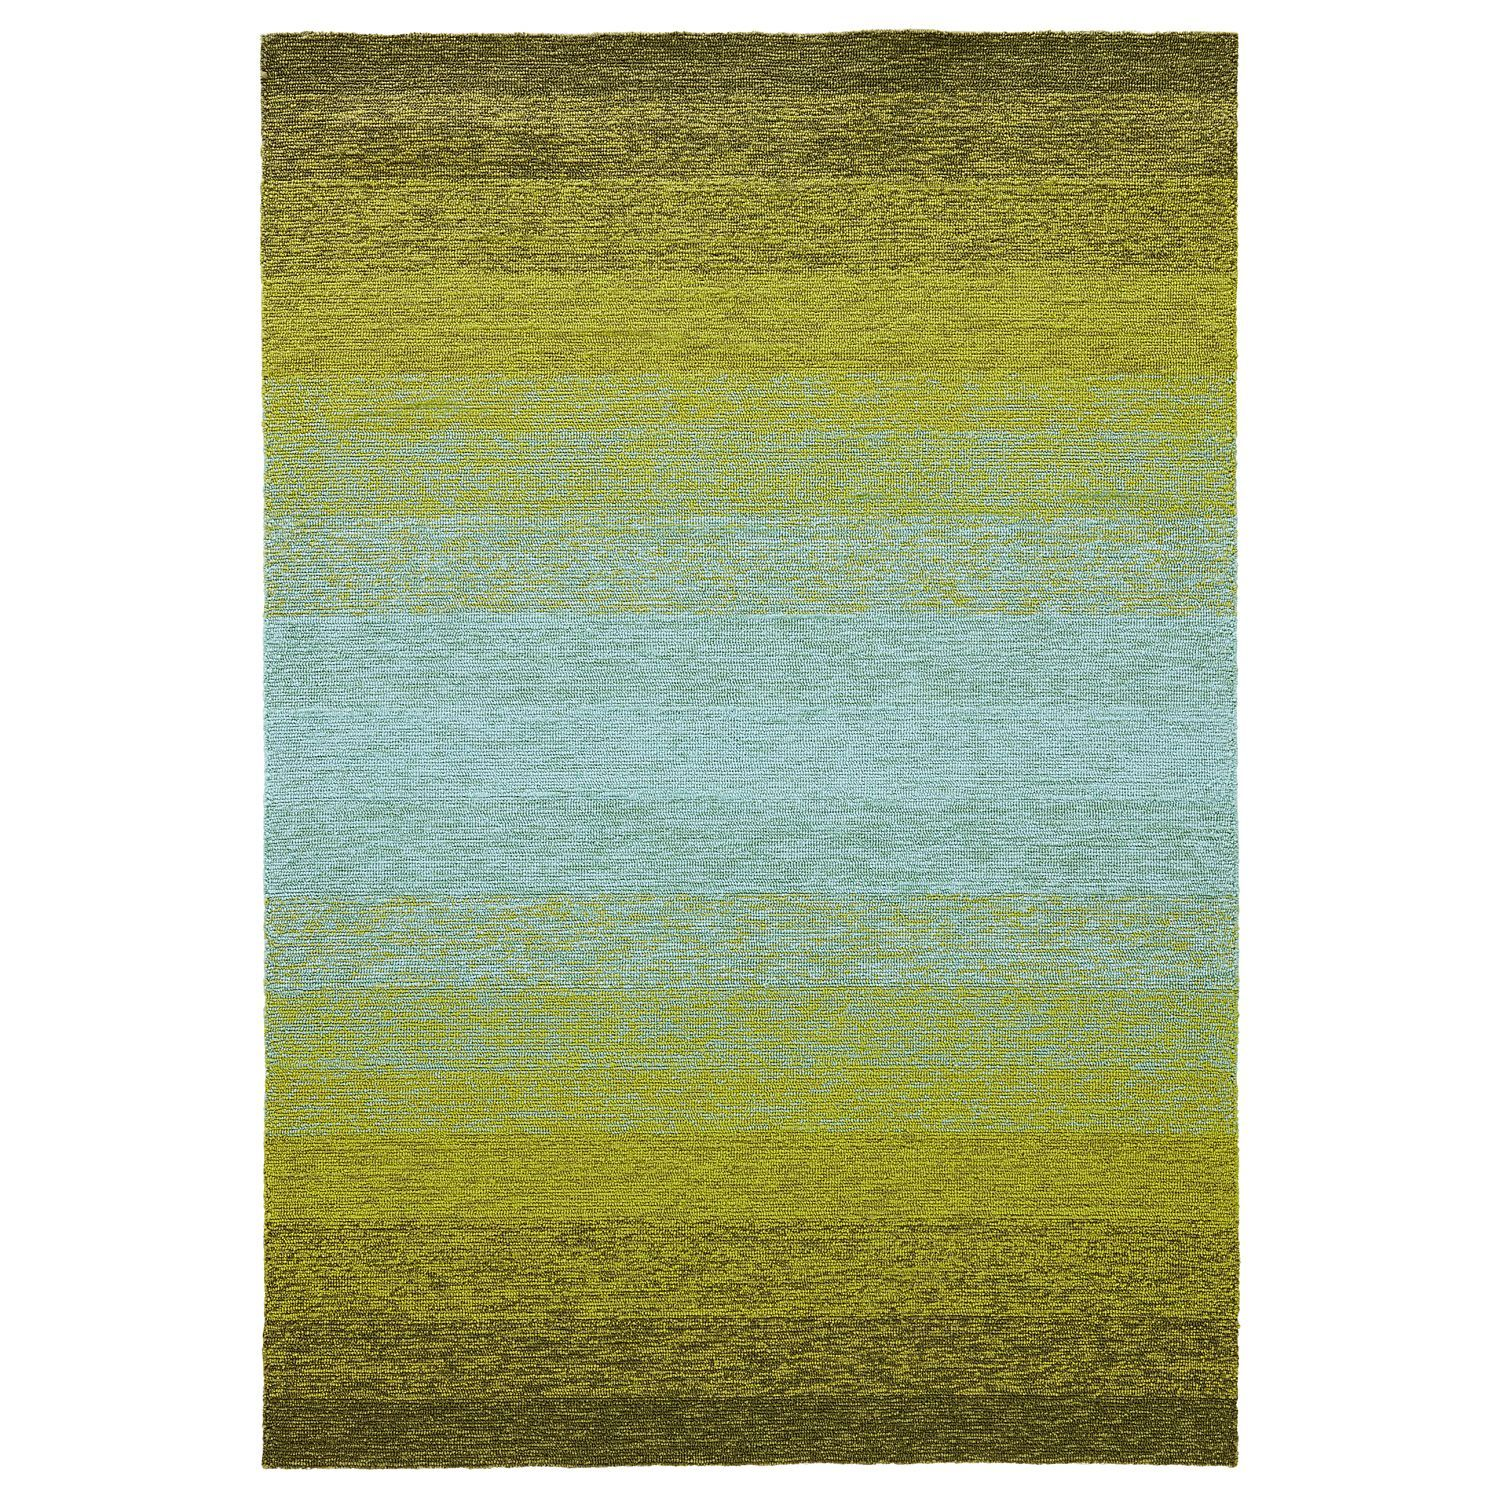 Ombre Lime Green Turquoise Area Rug